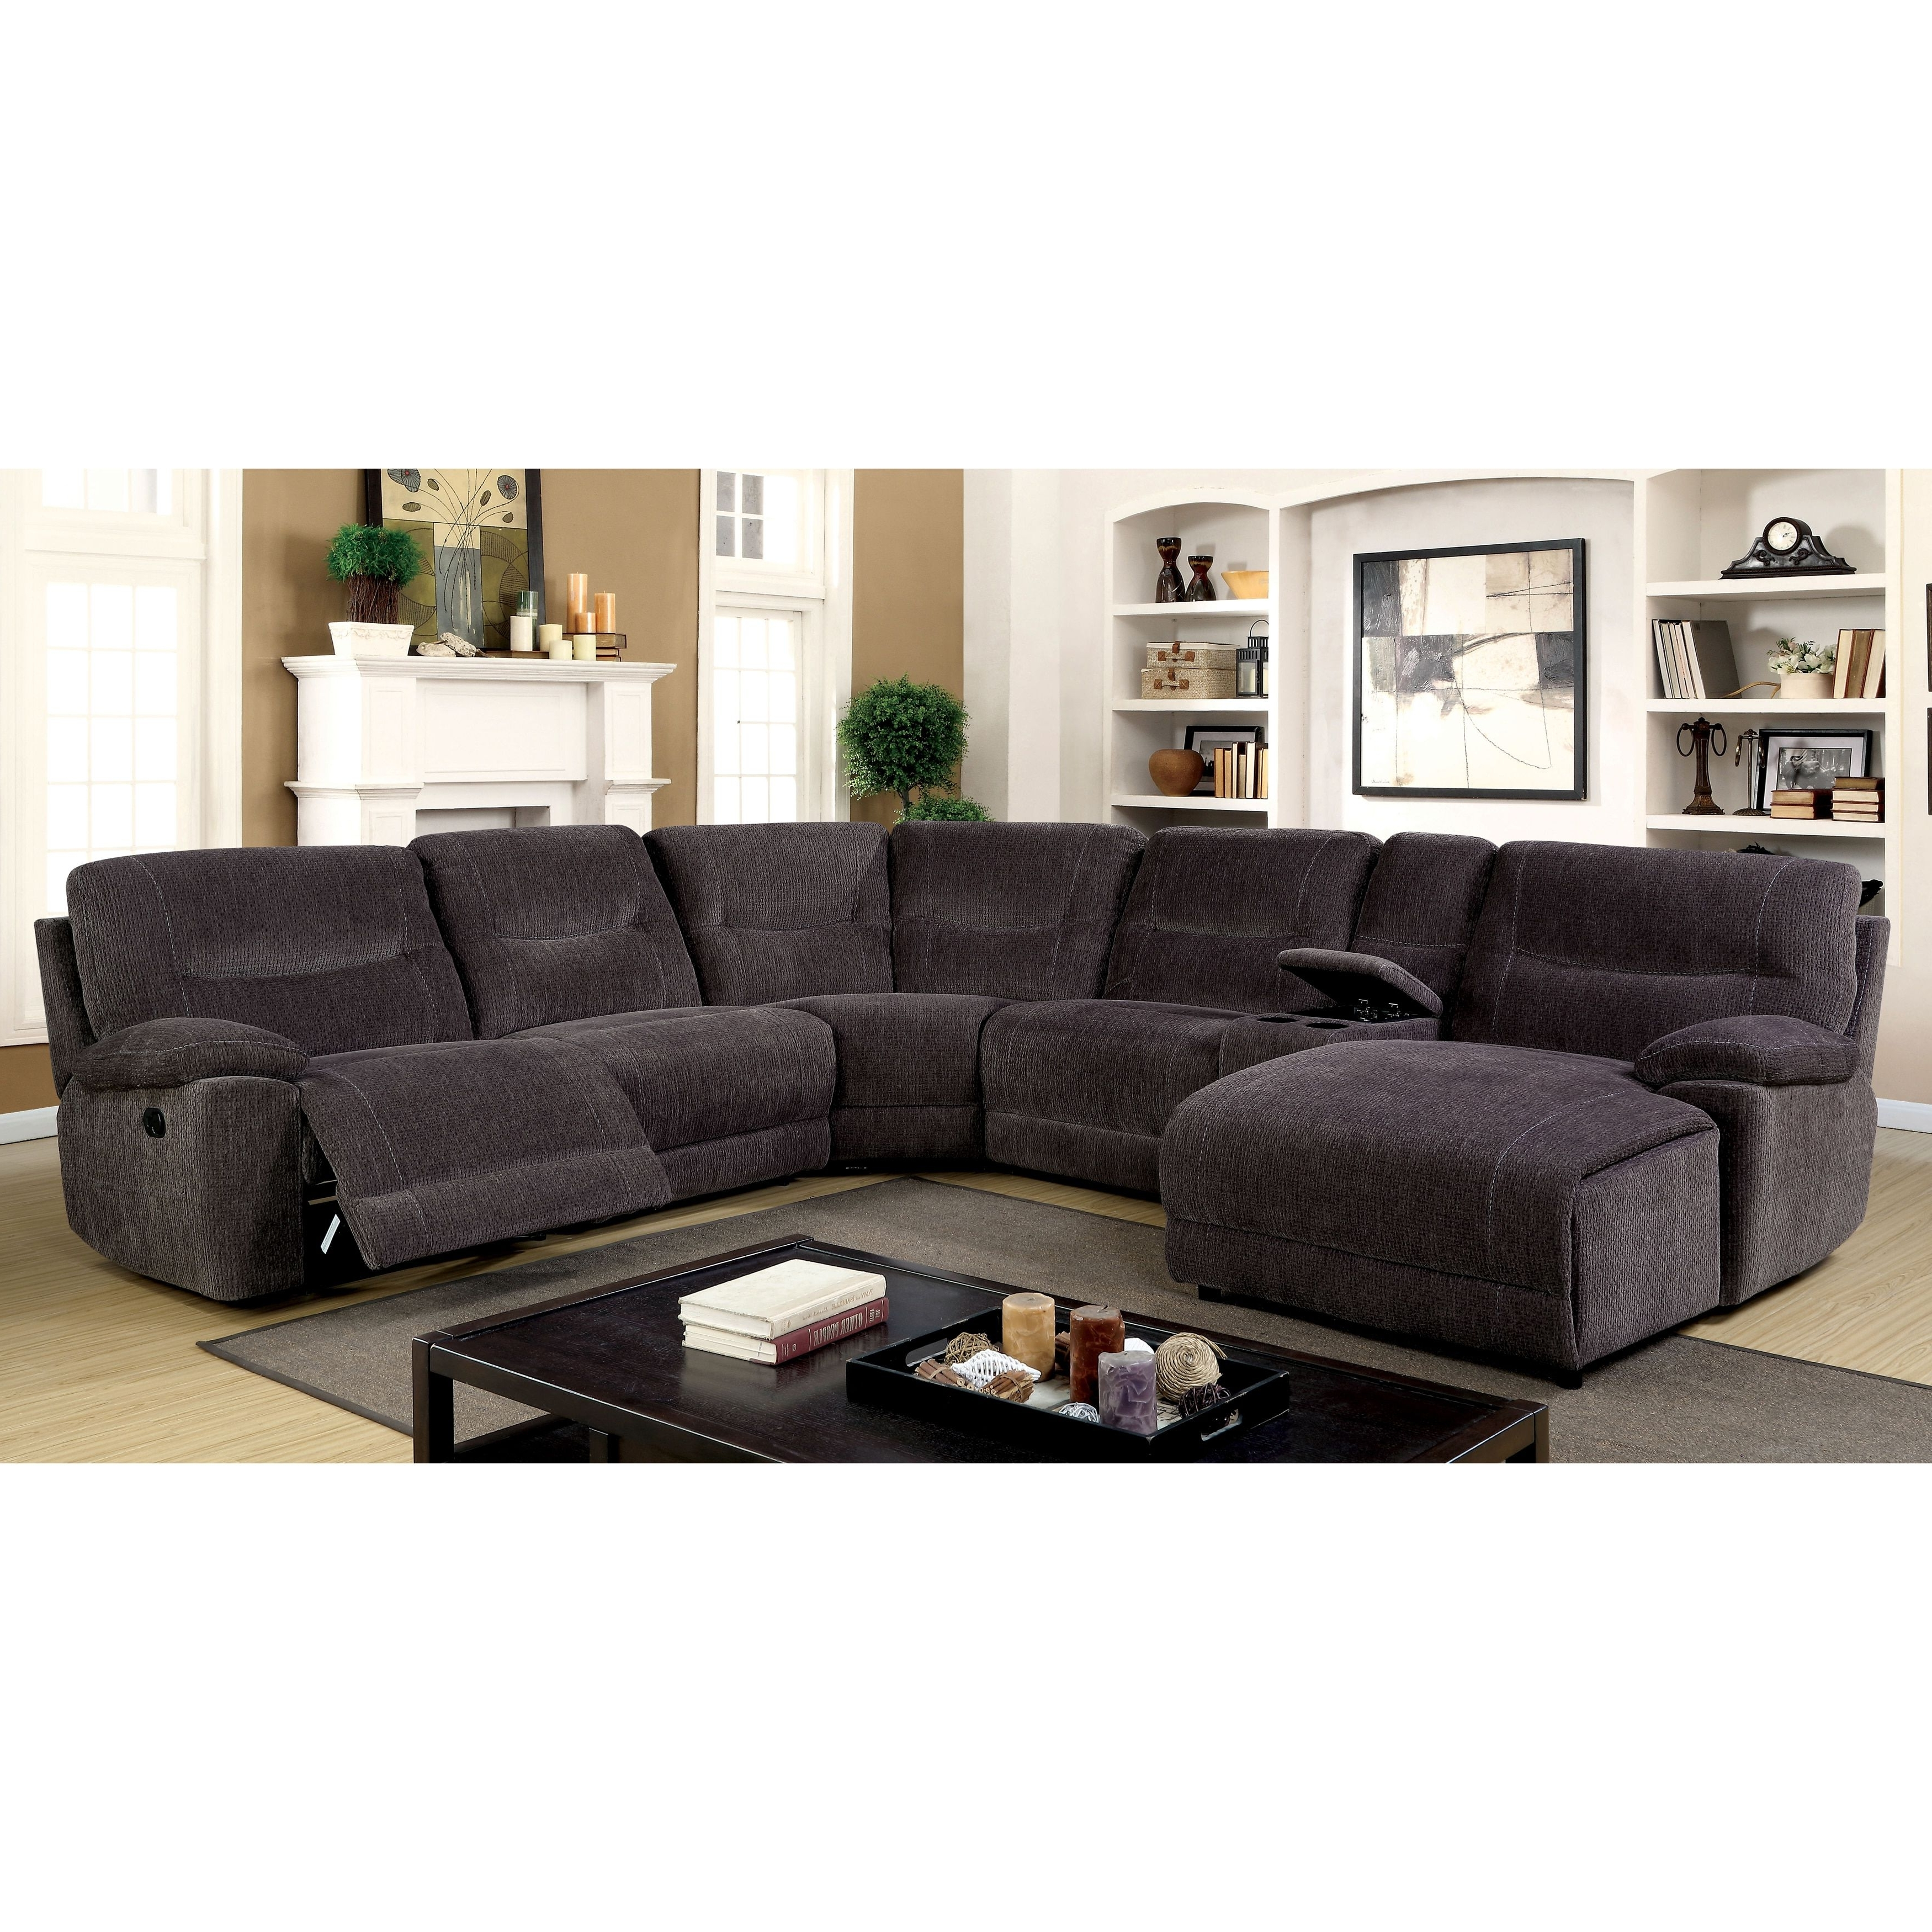 Johnson City Tn Sectional Sofas For Most Recent Furniture Of America Colen Reclining Chenille Fabric Grey L Shaped (View 11 of 15)